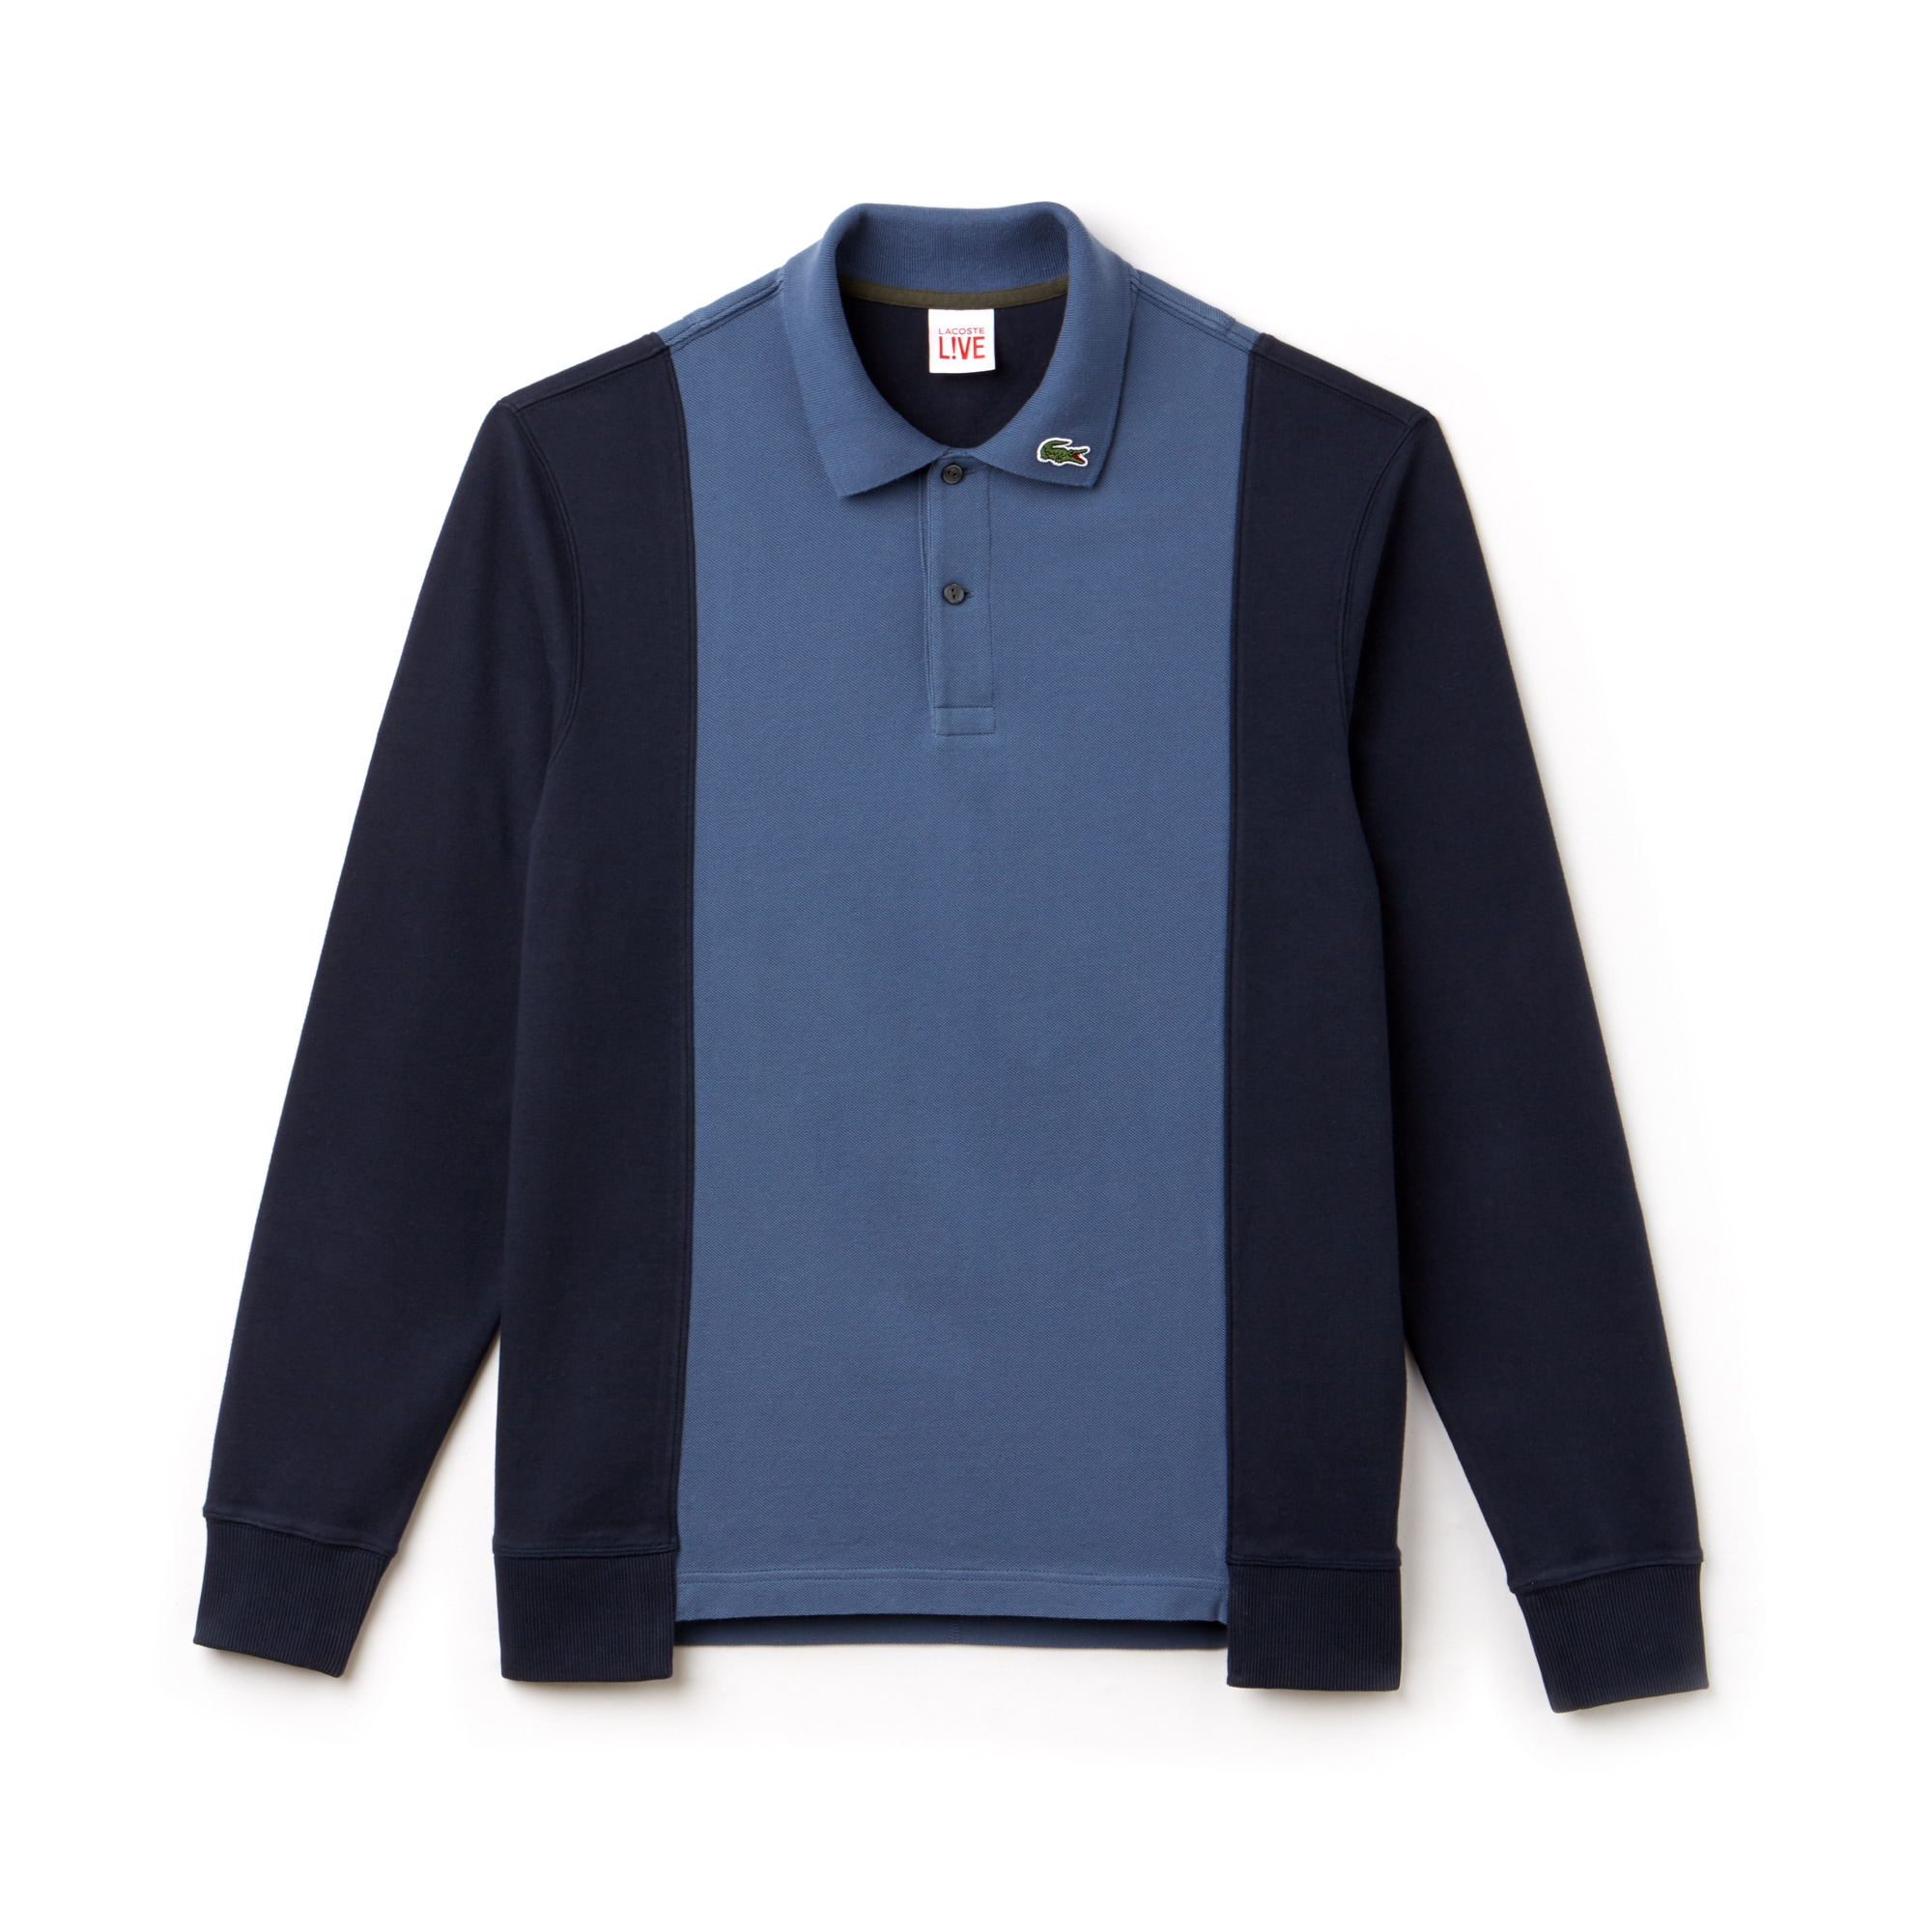 Men's LIVE Regular Fit Colorblock Piqué Polo